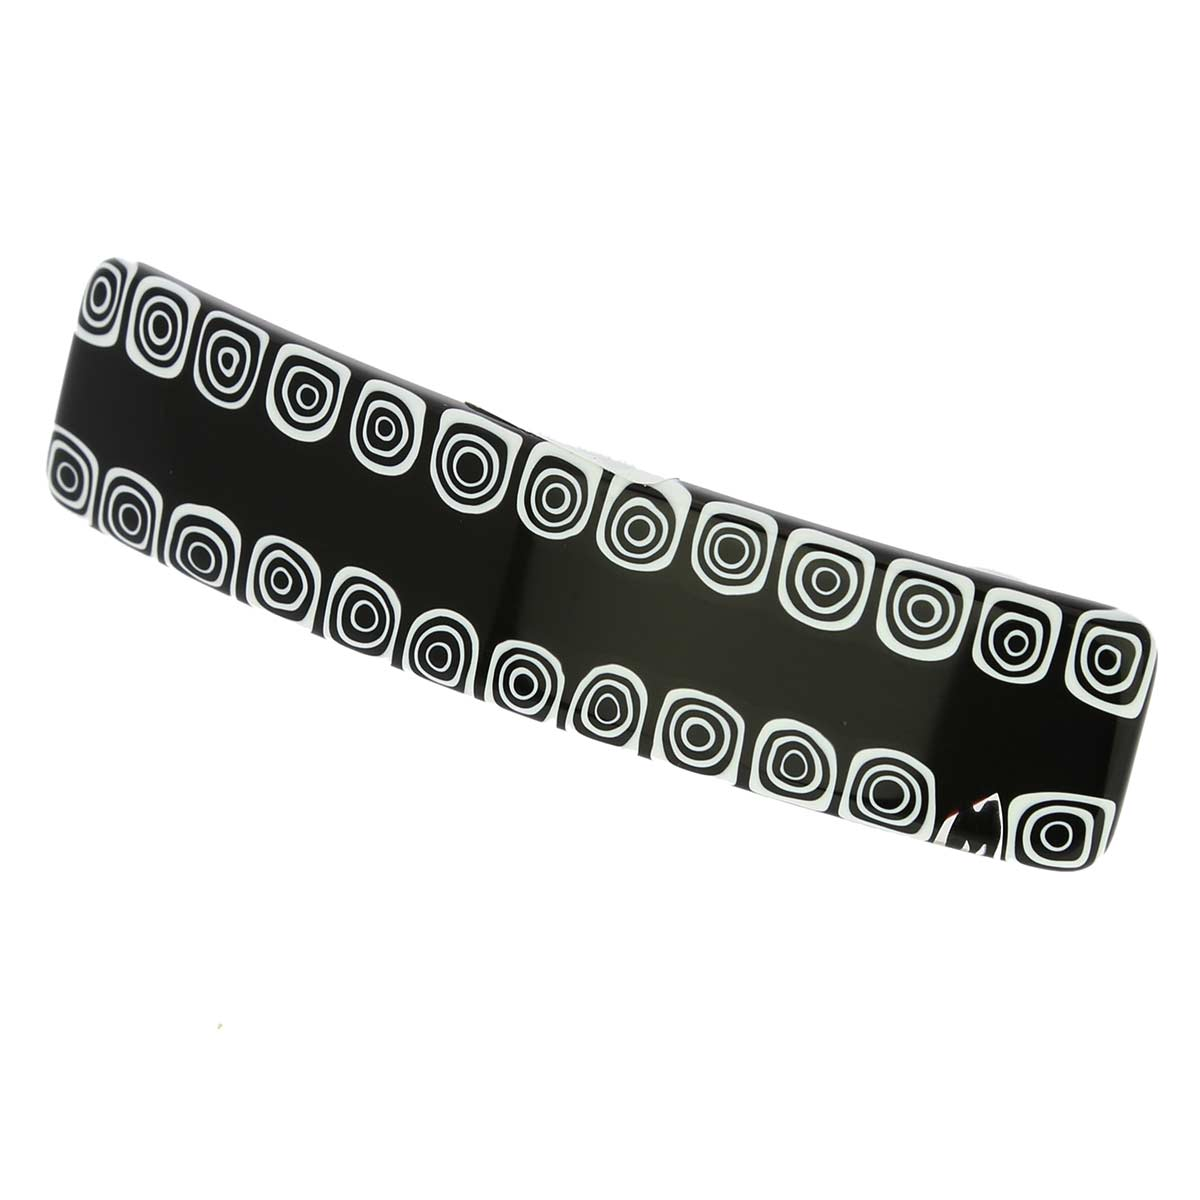 Murano Millefiori Hair Clip - Black and White Mosaic